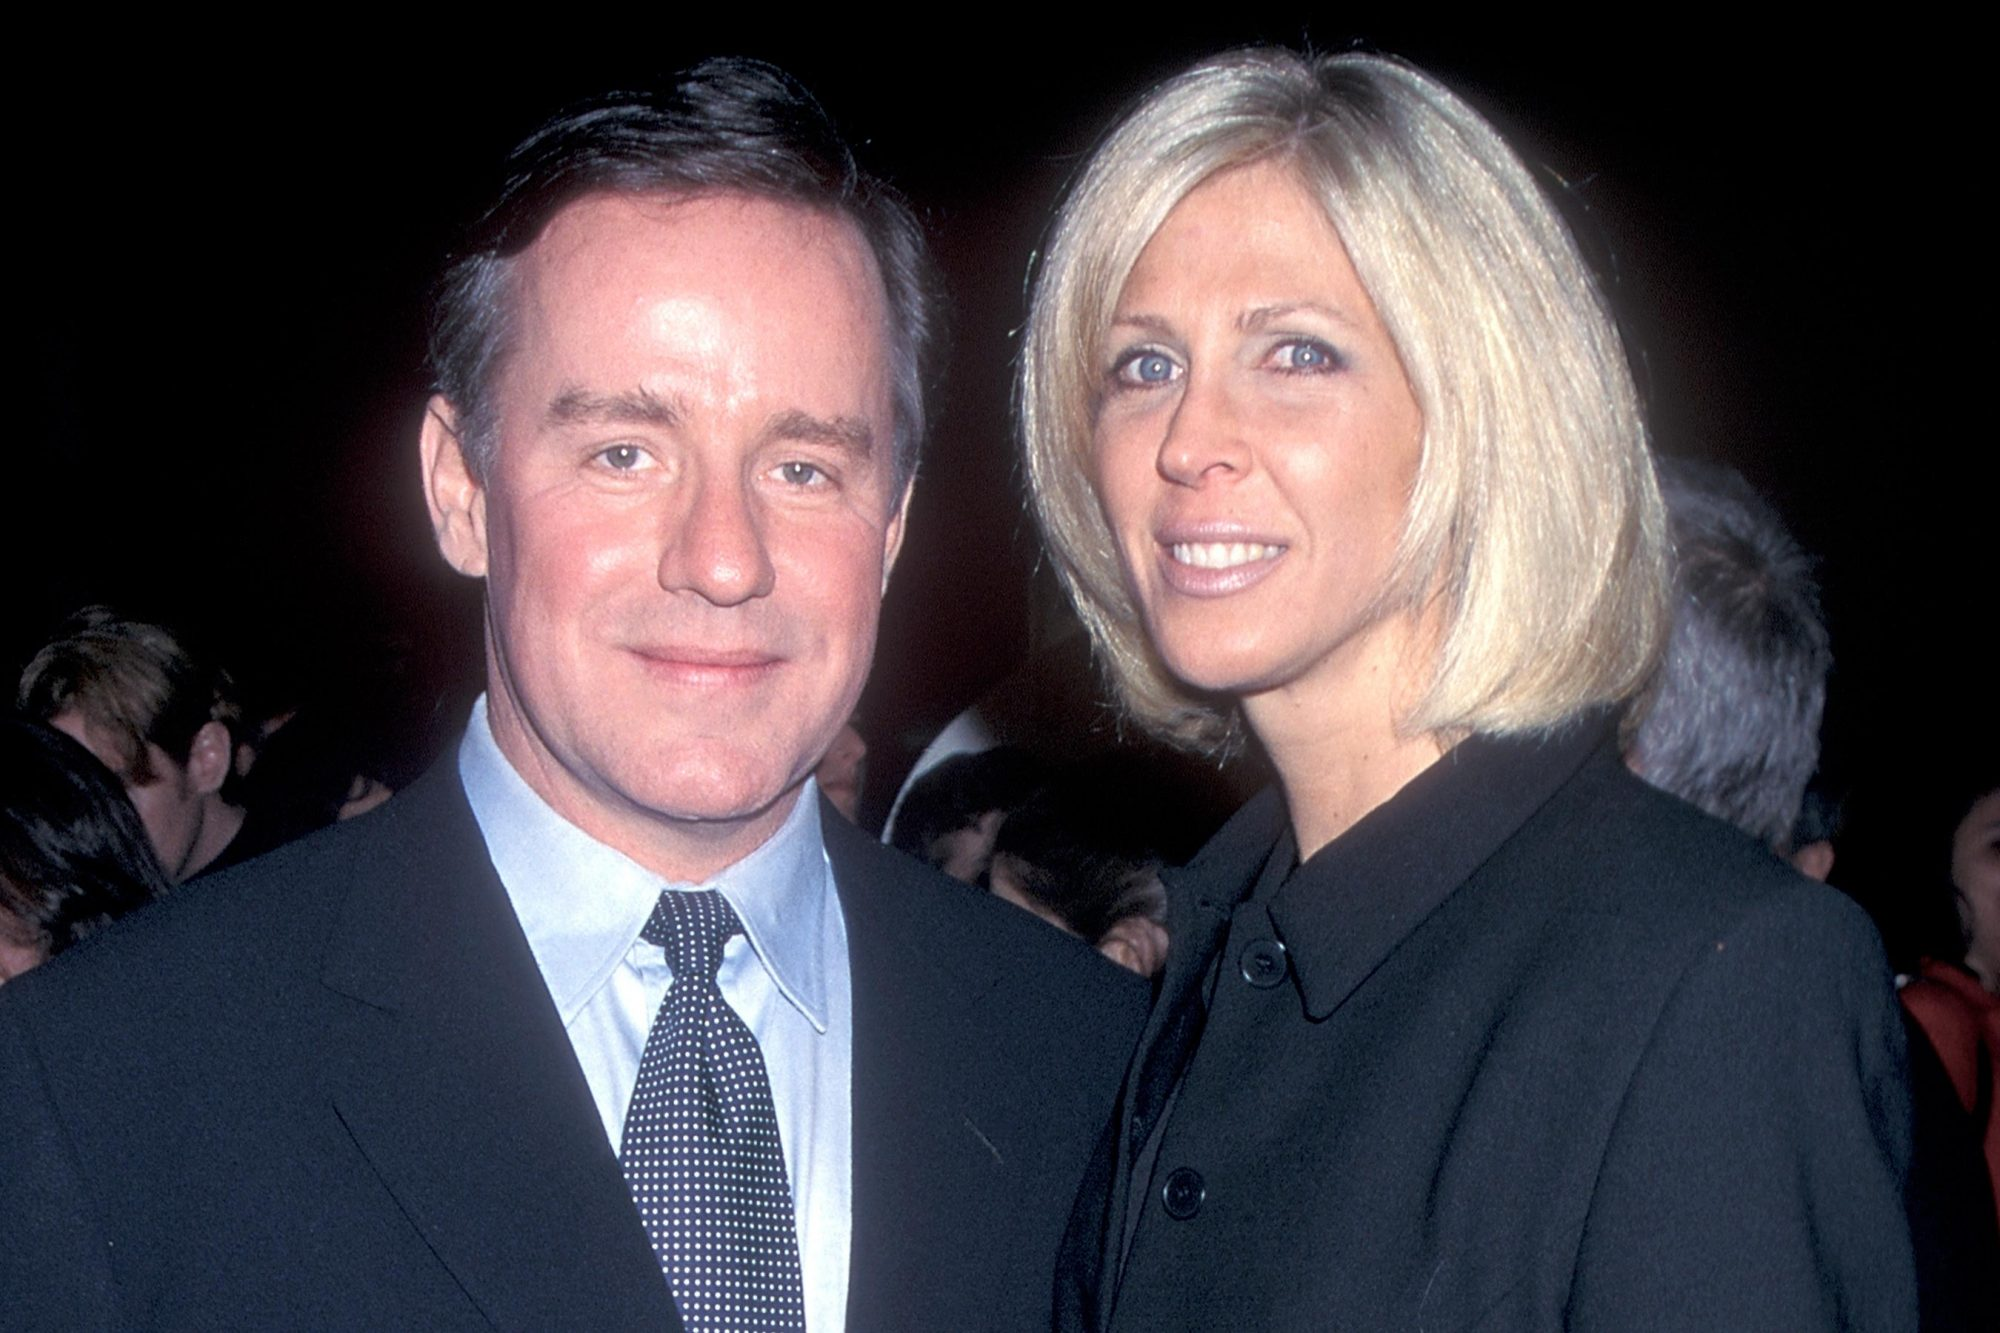 """UNIVERSAL CITY, CA - MARCH 27: Actor Phil Hartman and wife Brynn attend the """"Sgt. Bilko"""" Universal City Premiere on March 27, 1996 at the Cineplex Odeon Universal City Cinemas in Universal City, California. (Photo by Ron Galella, Ltd./Ron Galella Collection via Getty Images)"""